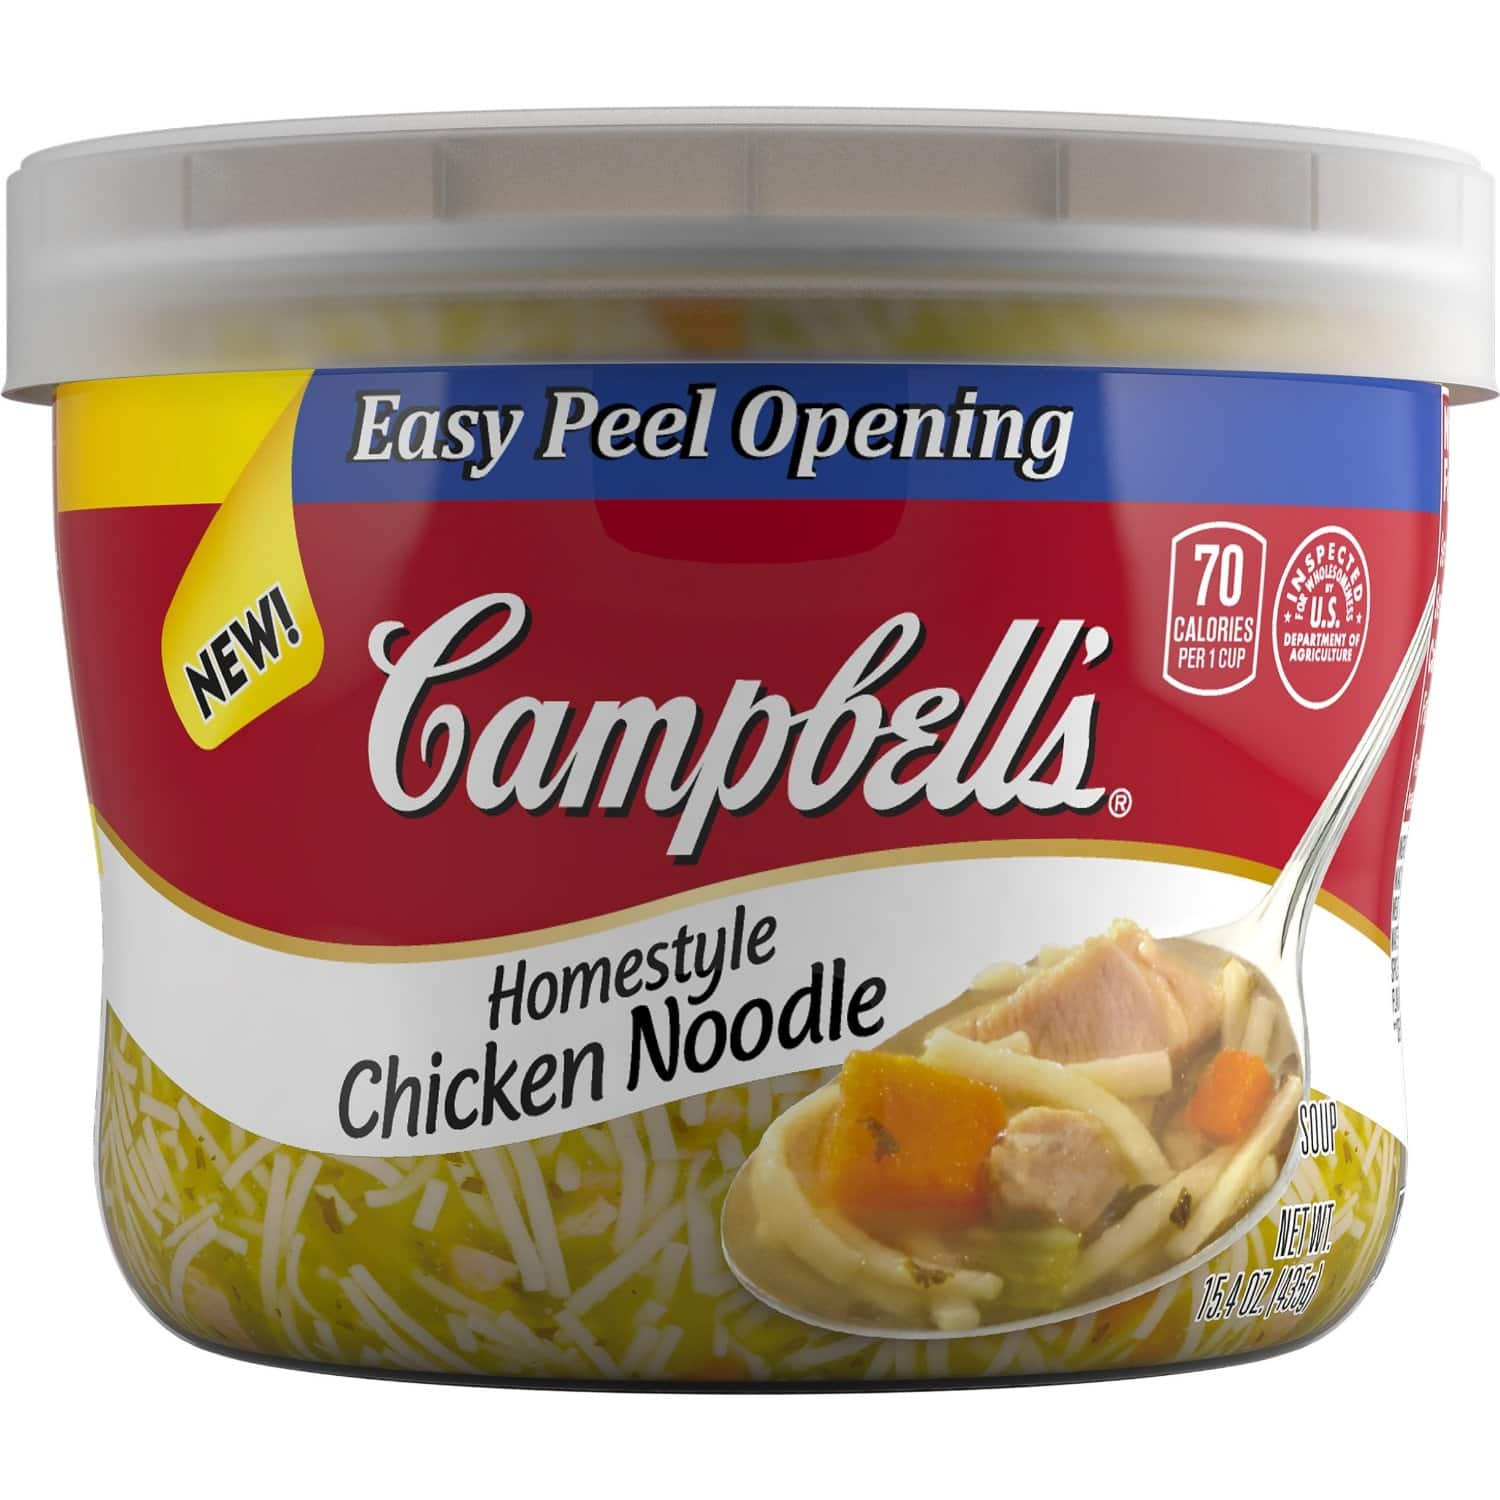 OOS--Campbell's Homestyle Soup, Chicken Noodle, 15.4 Ounce (Pack of 8) $6.34 or less w/subscribe & save @Amazon ( exclusively for Prime members.)